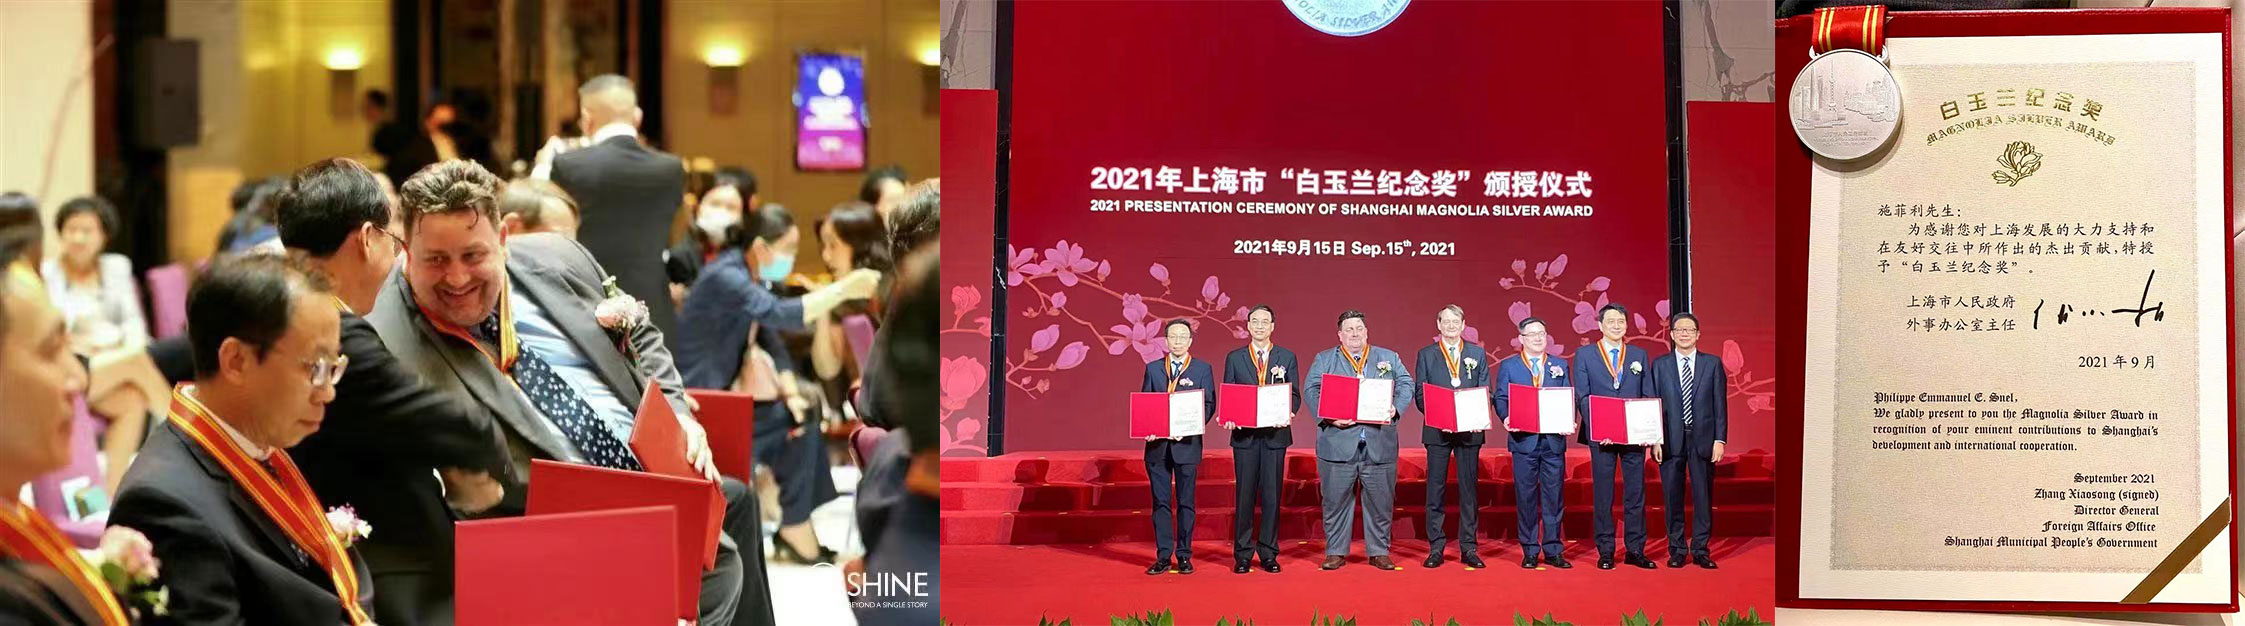 Philippe Snel Honored with 2021 Shanghai Magnolia Silver Award